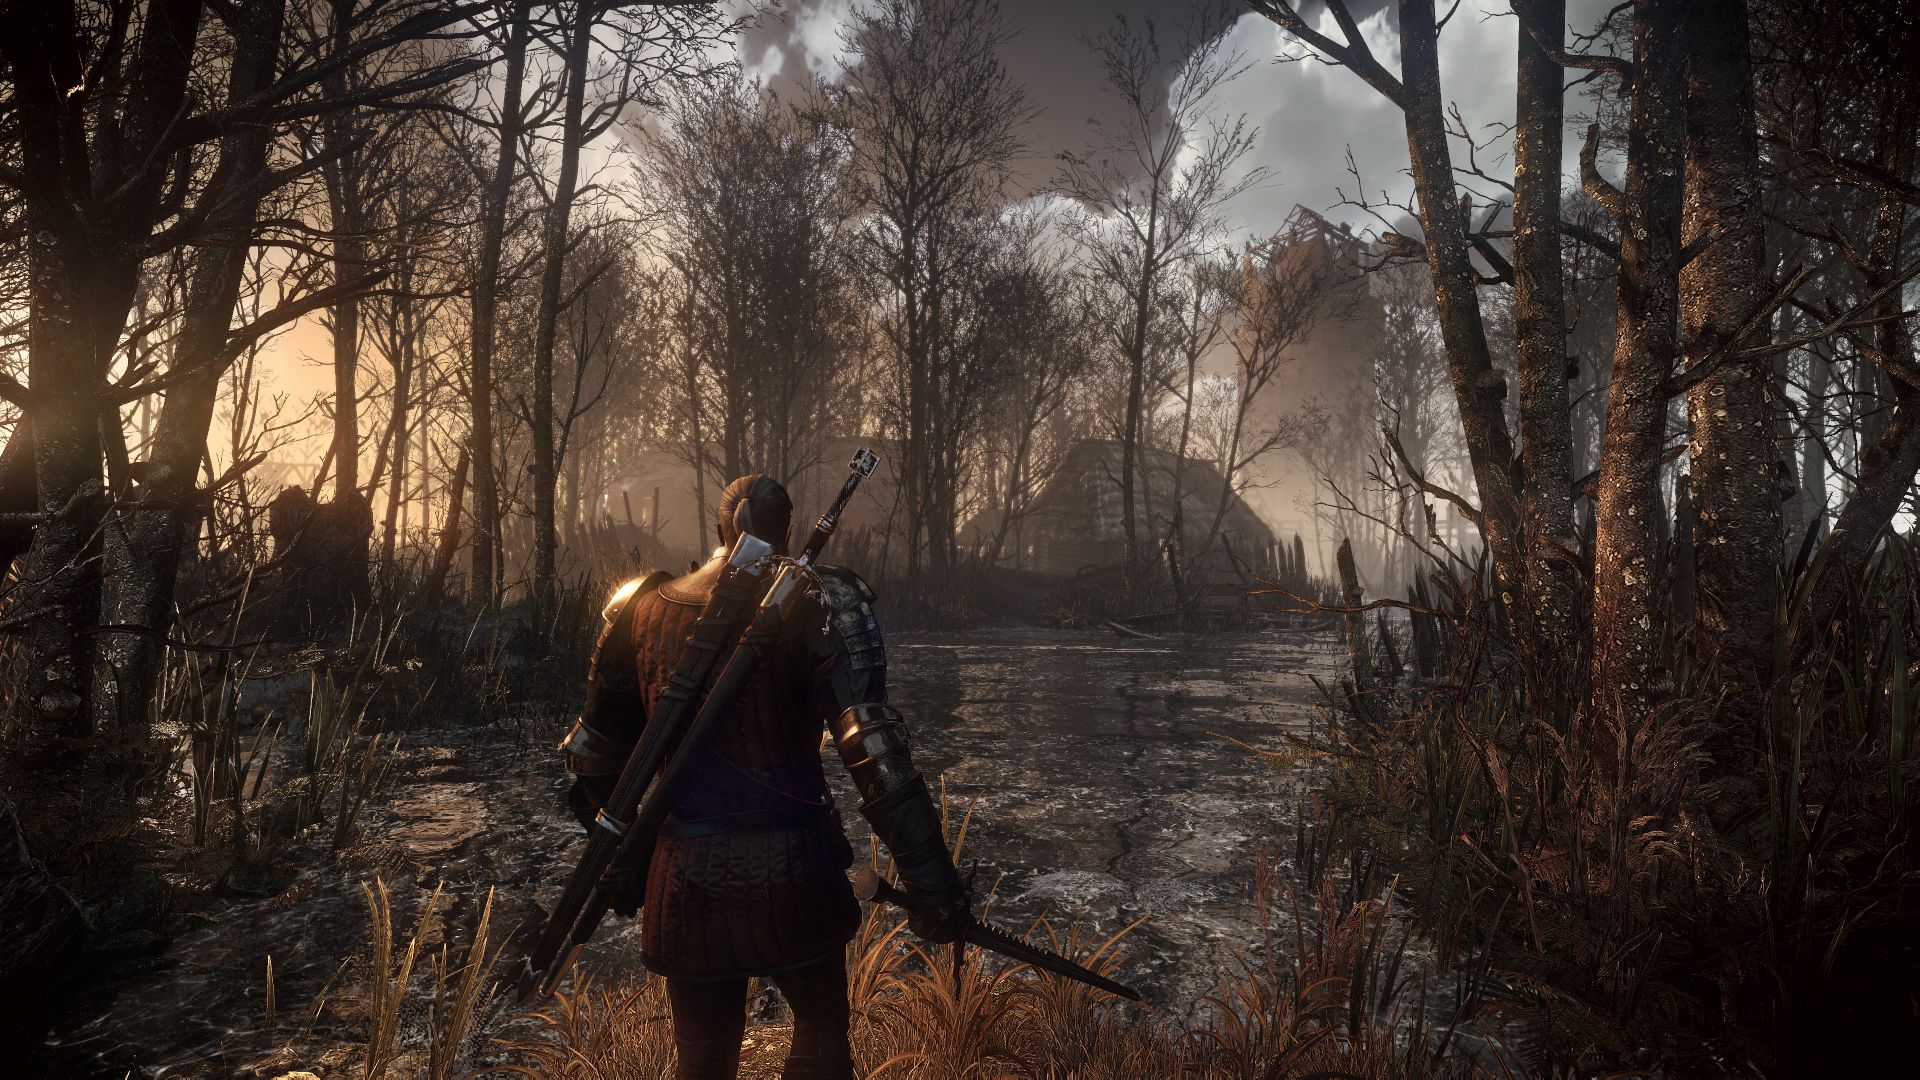 the_witcher_3_wild_hunt_a_mysterious_village_in_the_swamps_1402422232